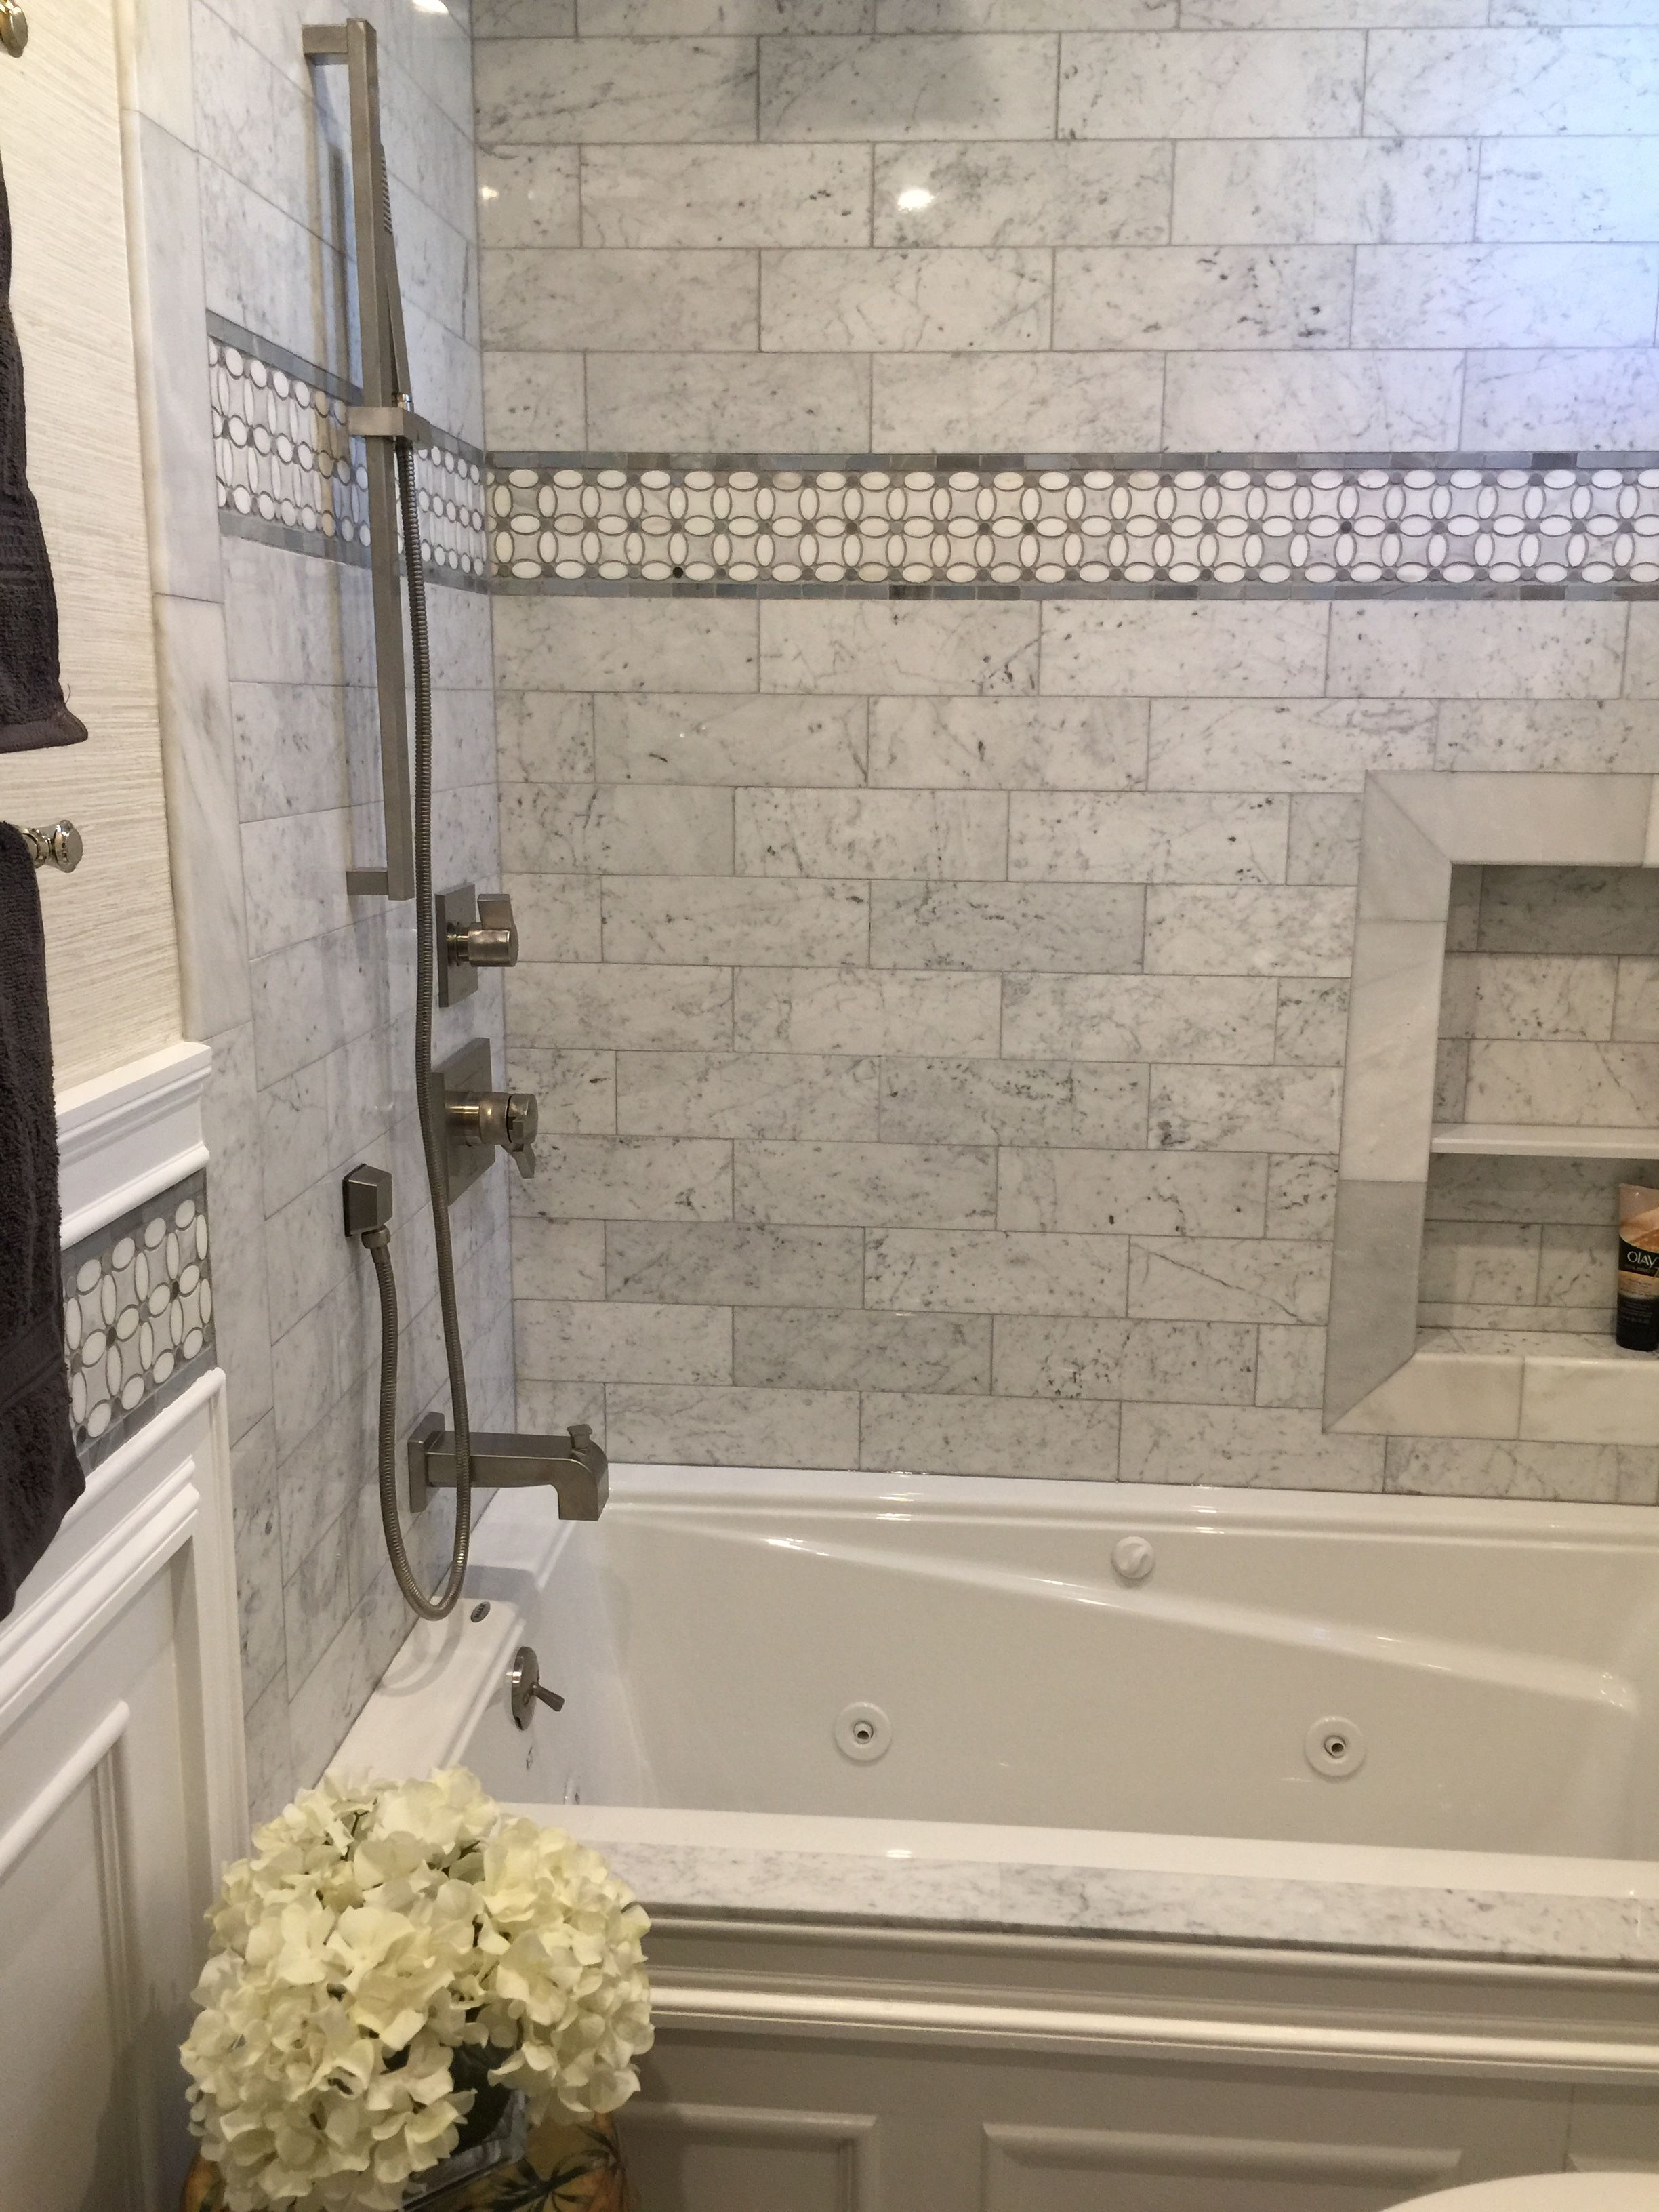 Beautiful marble shower wall with jacuzzi tub. | Bathroom pictures ...